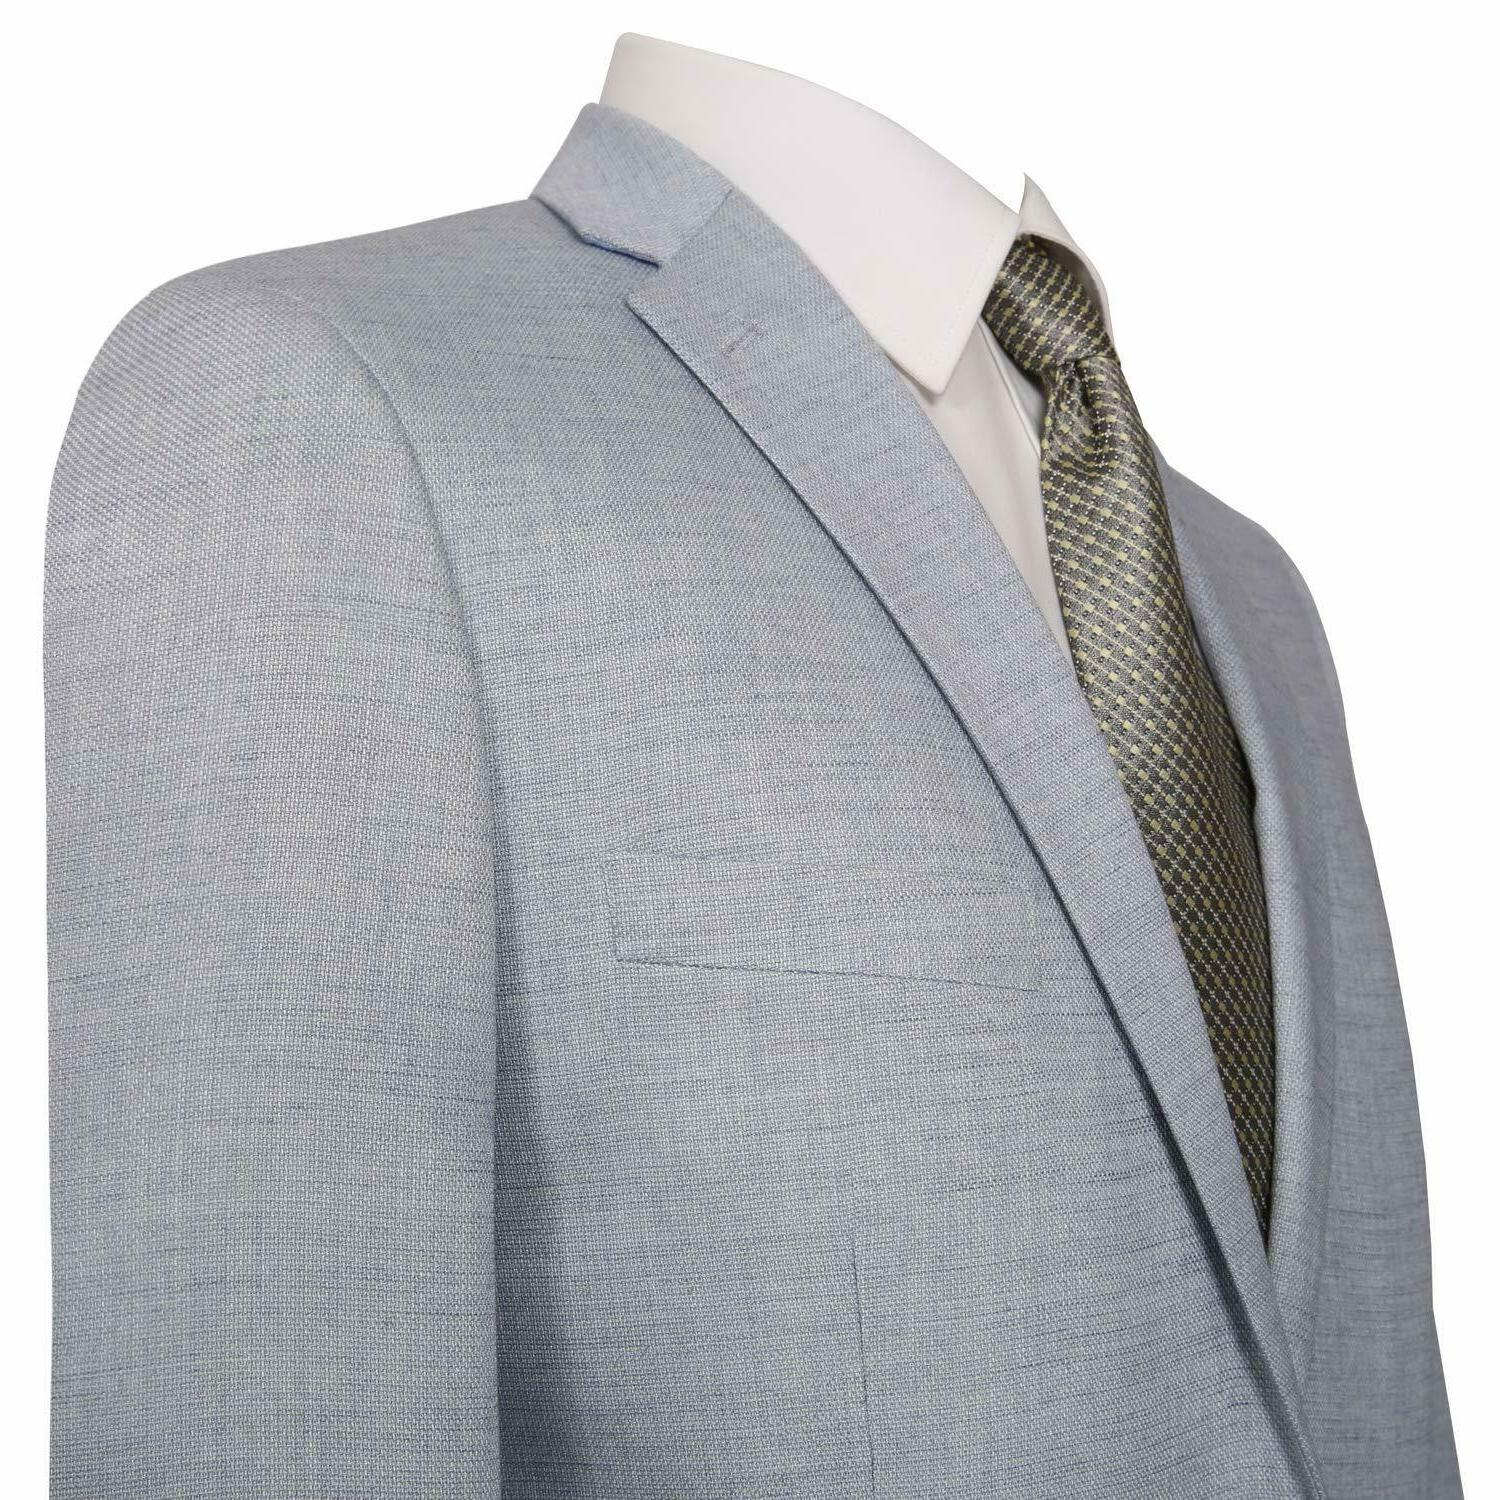 P&L Men's Two-Button Suit Jacket